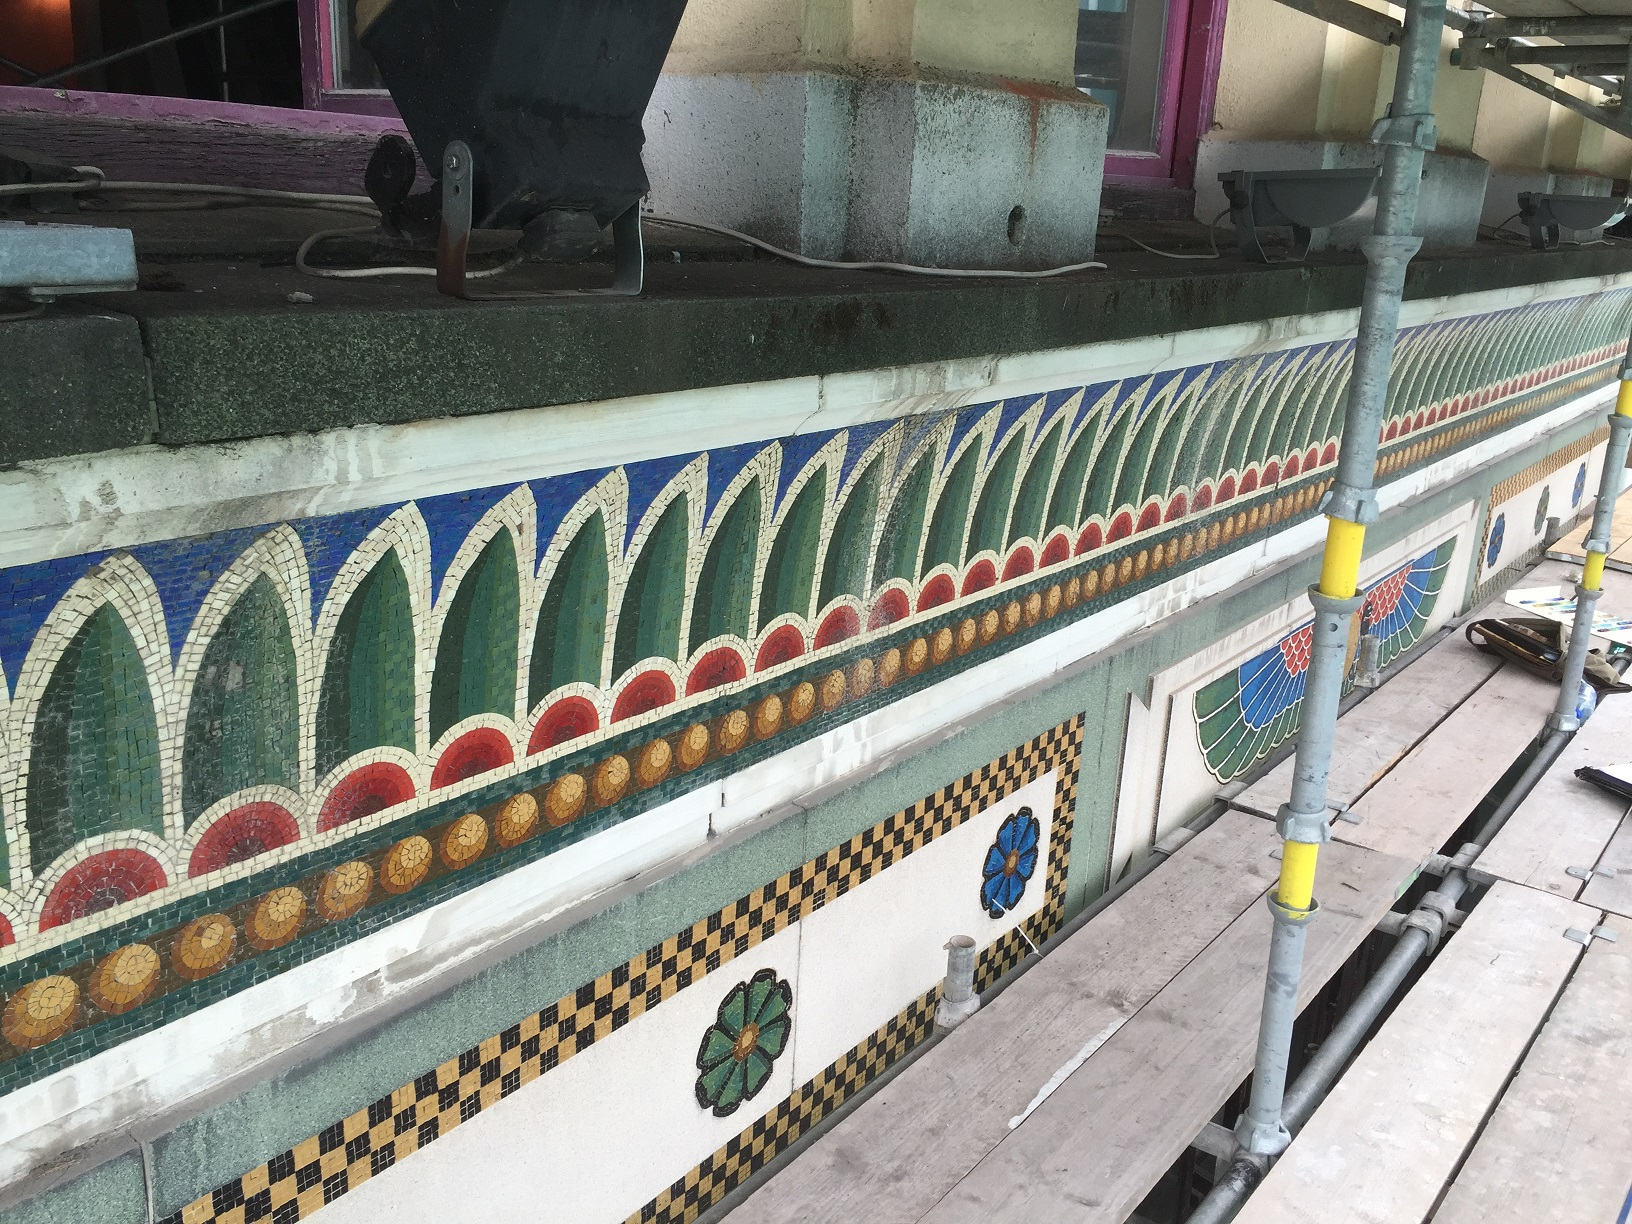 Bewleys Cafe, Dublin. Venetian glass and terrazzo mosaic